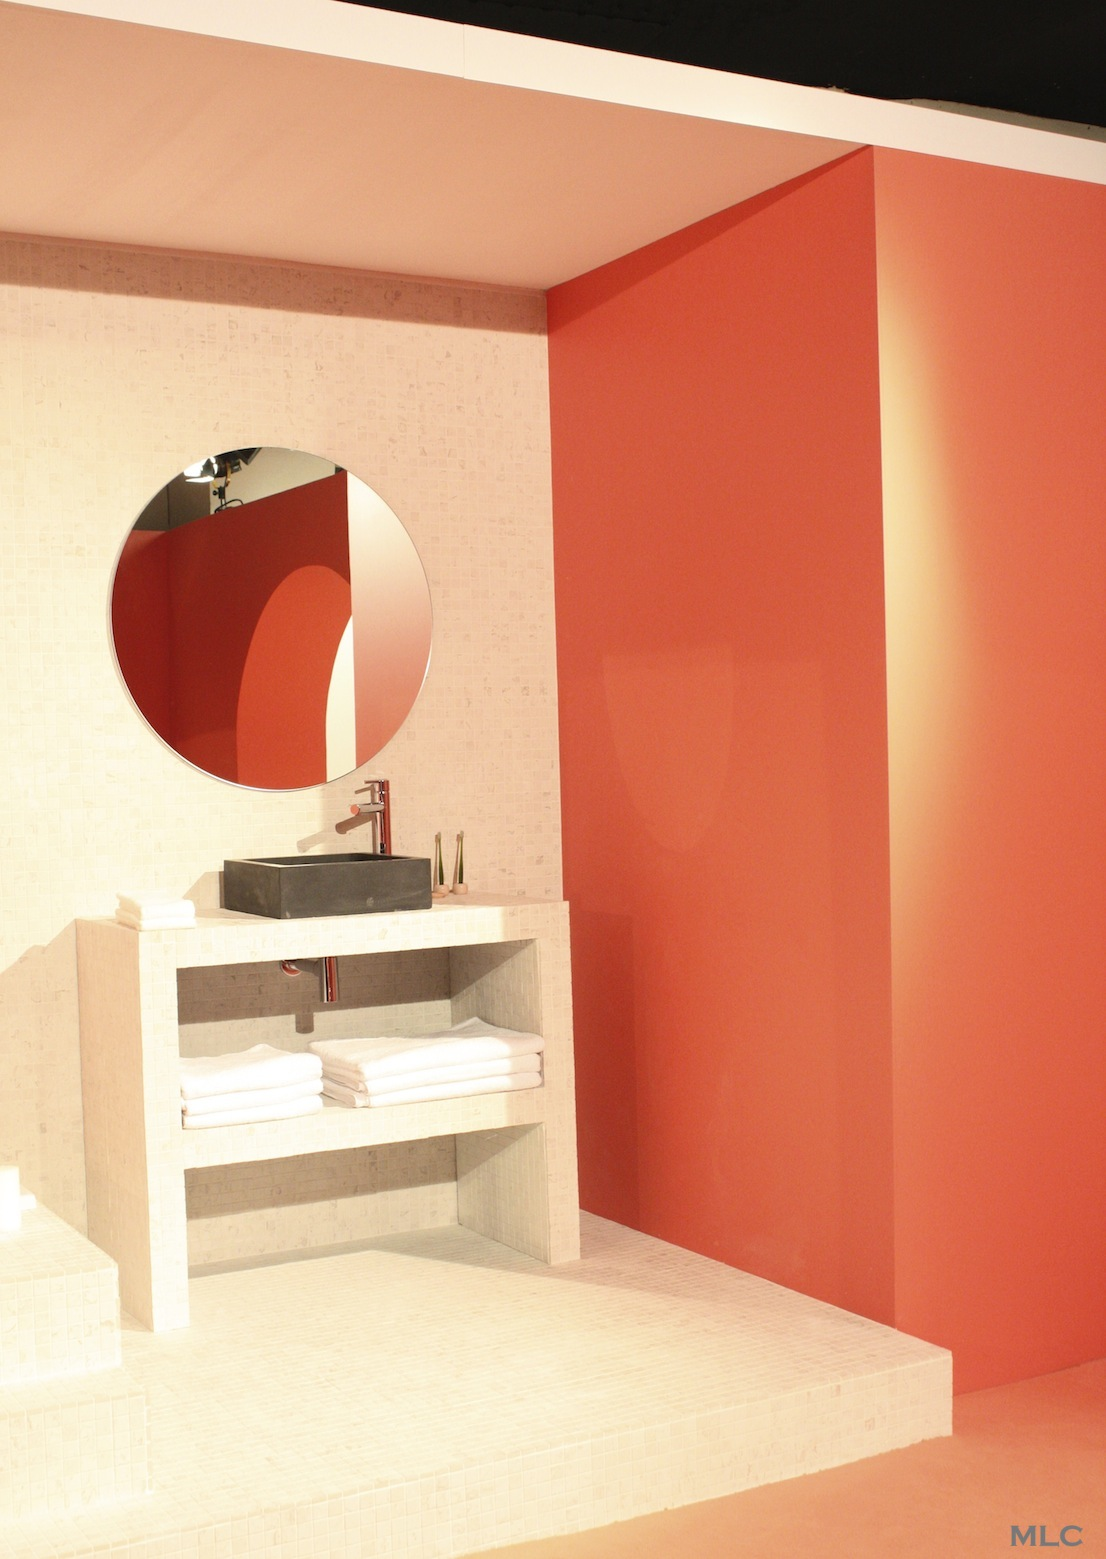 couleur corail inspiration pour la maison blog d co de mlc. Black Bedroom Furniture Sets. Home Design Ideas